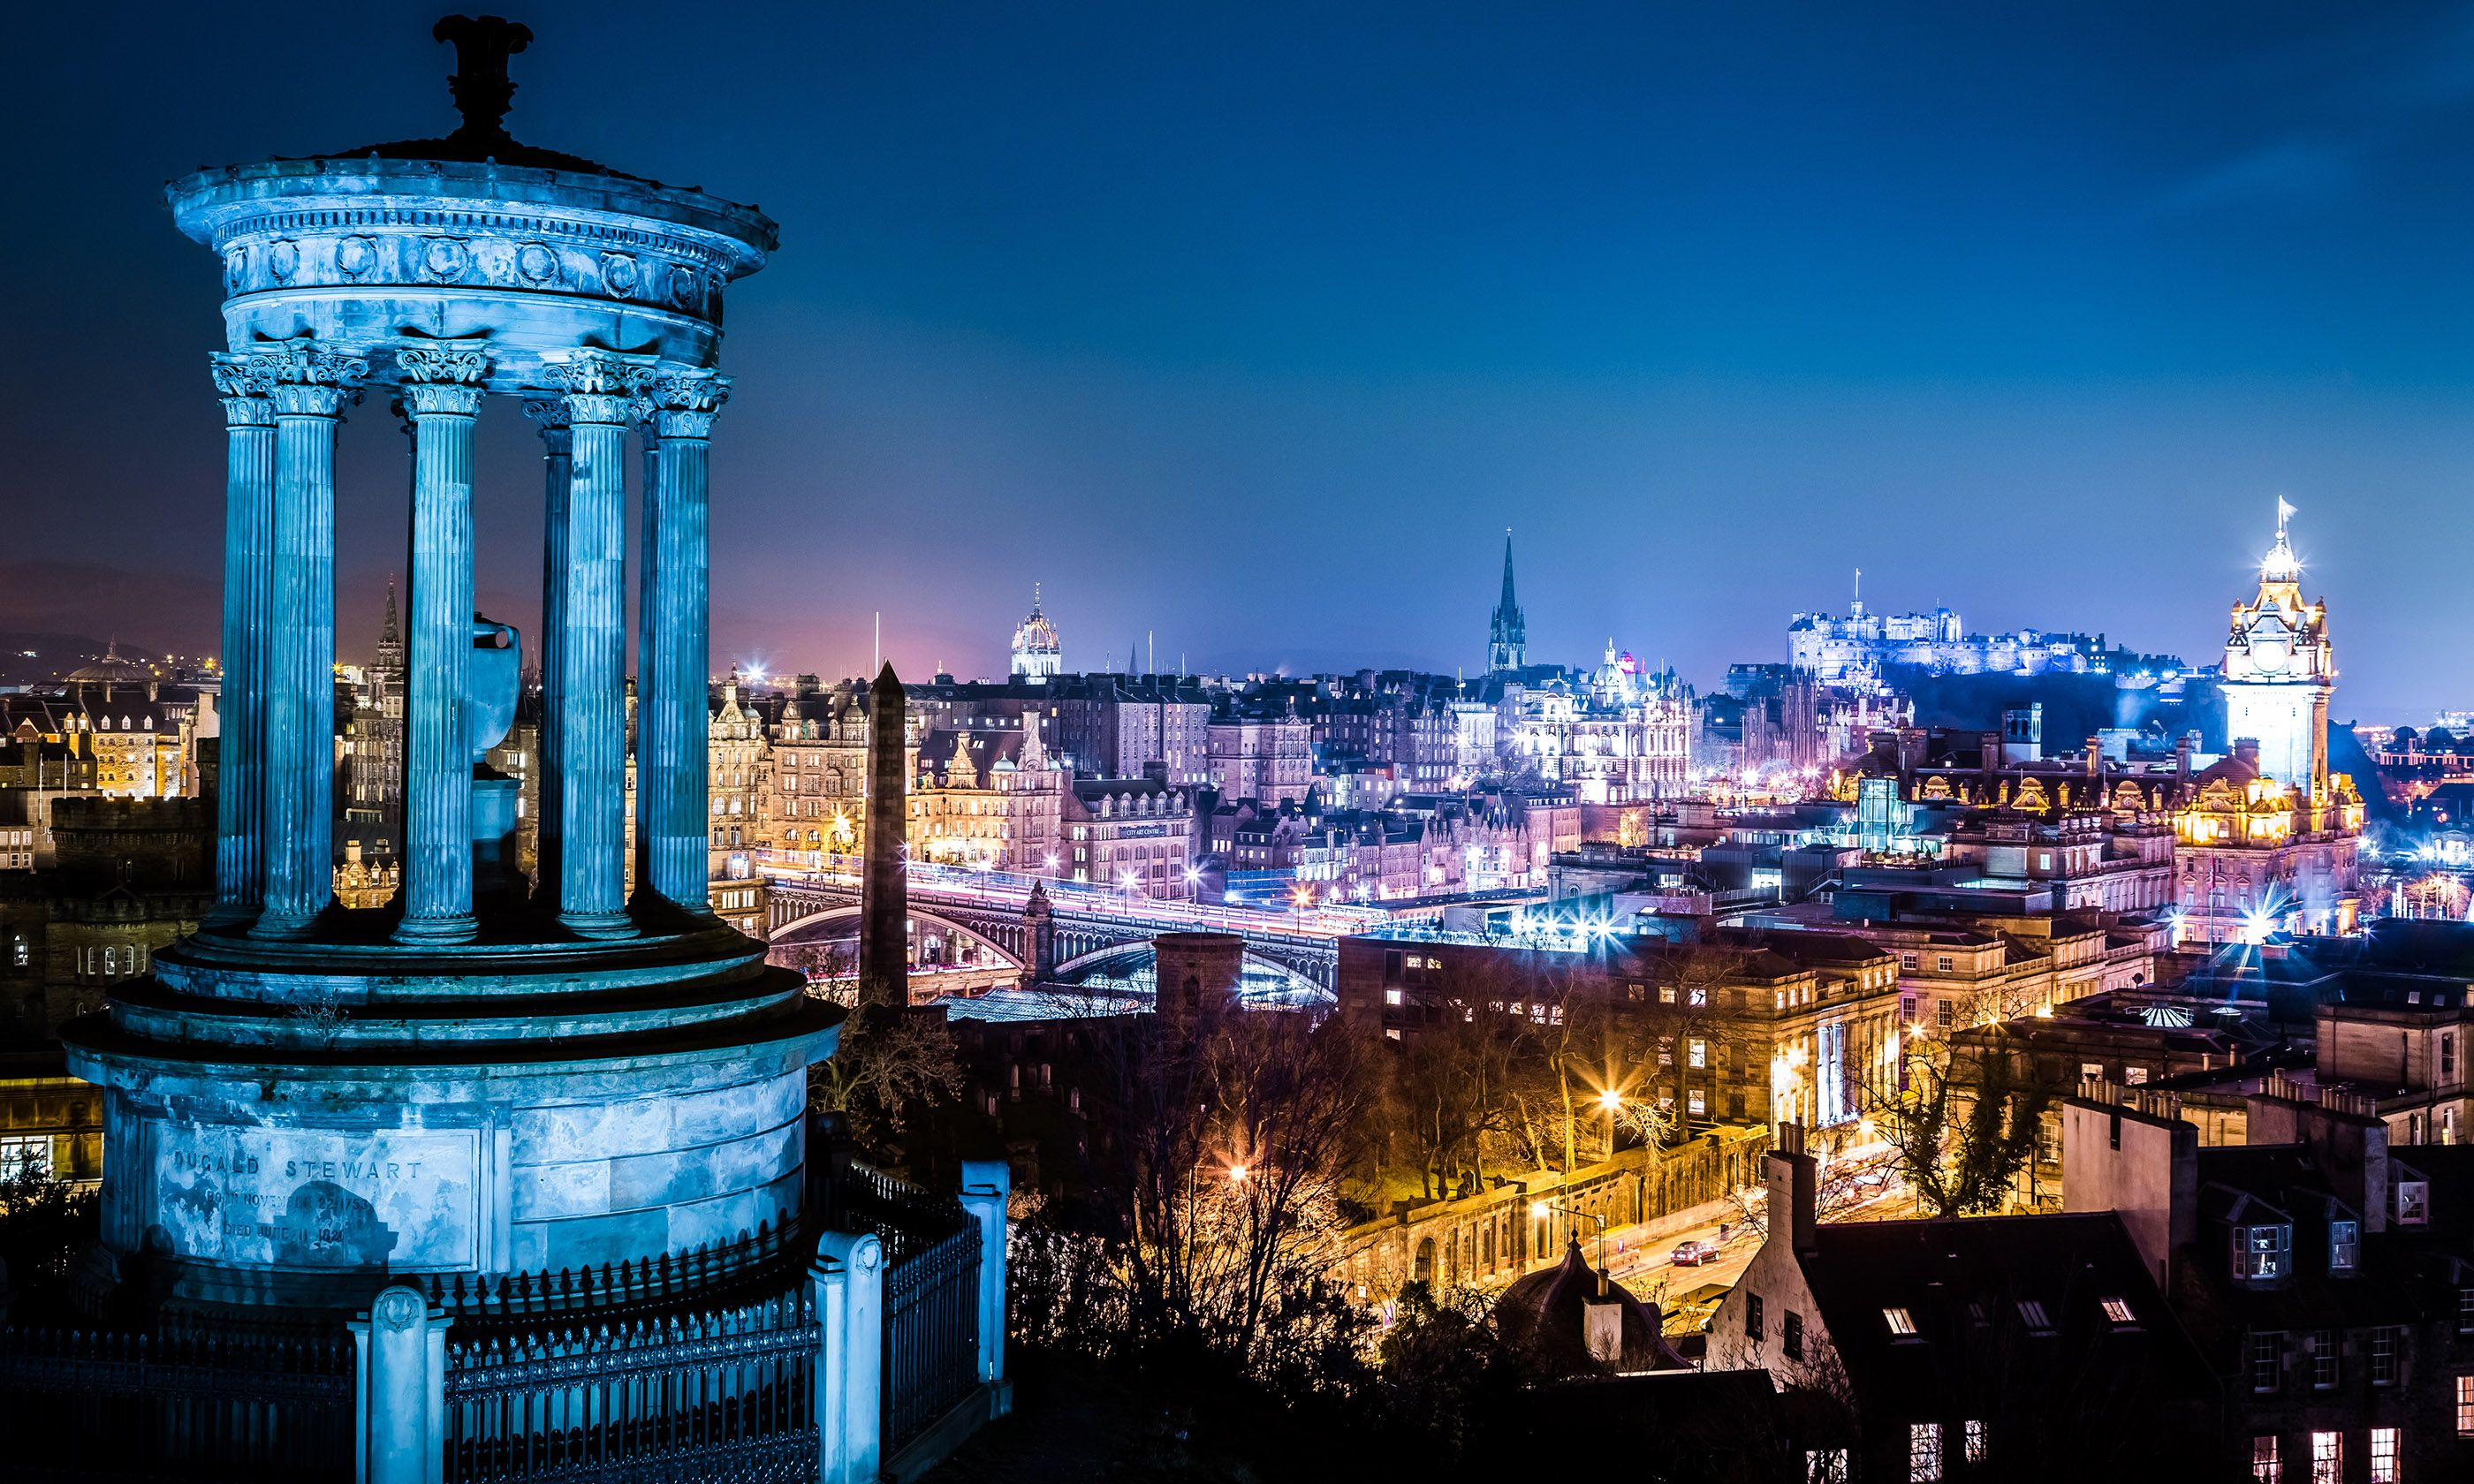 Edinburgh at night (Shutterstock.com)